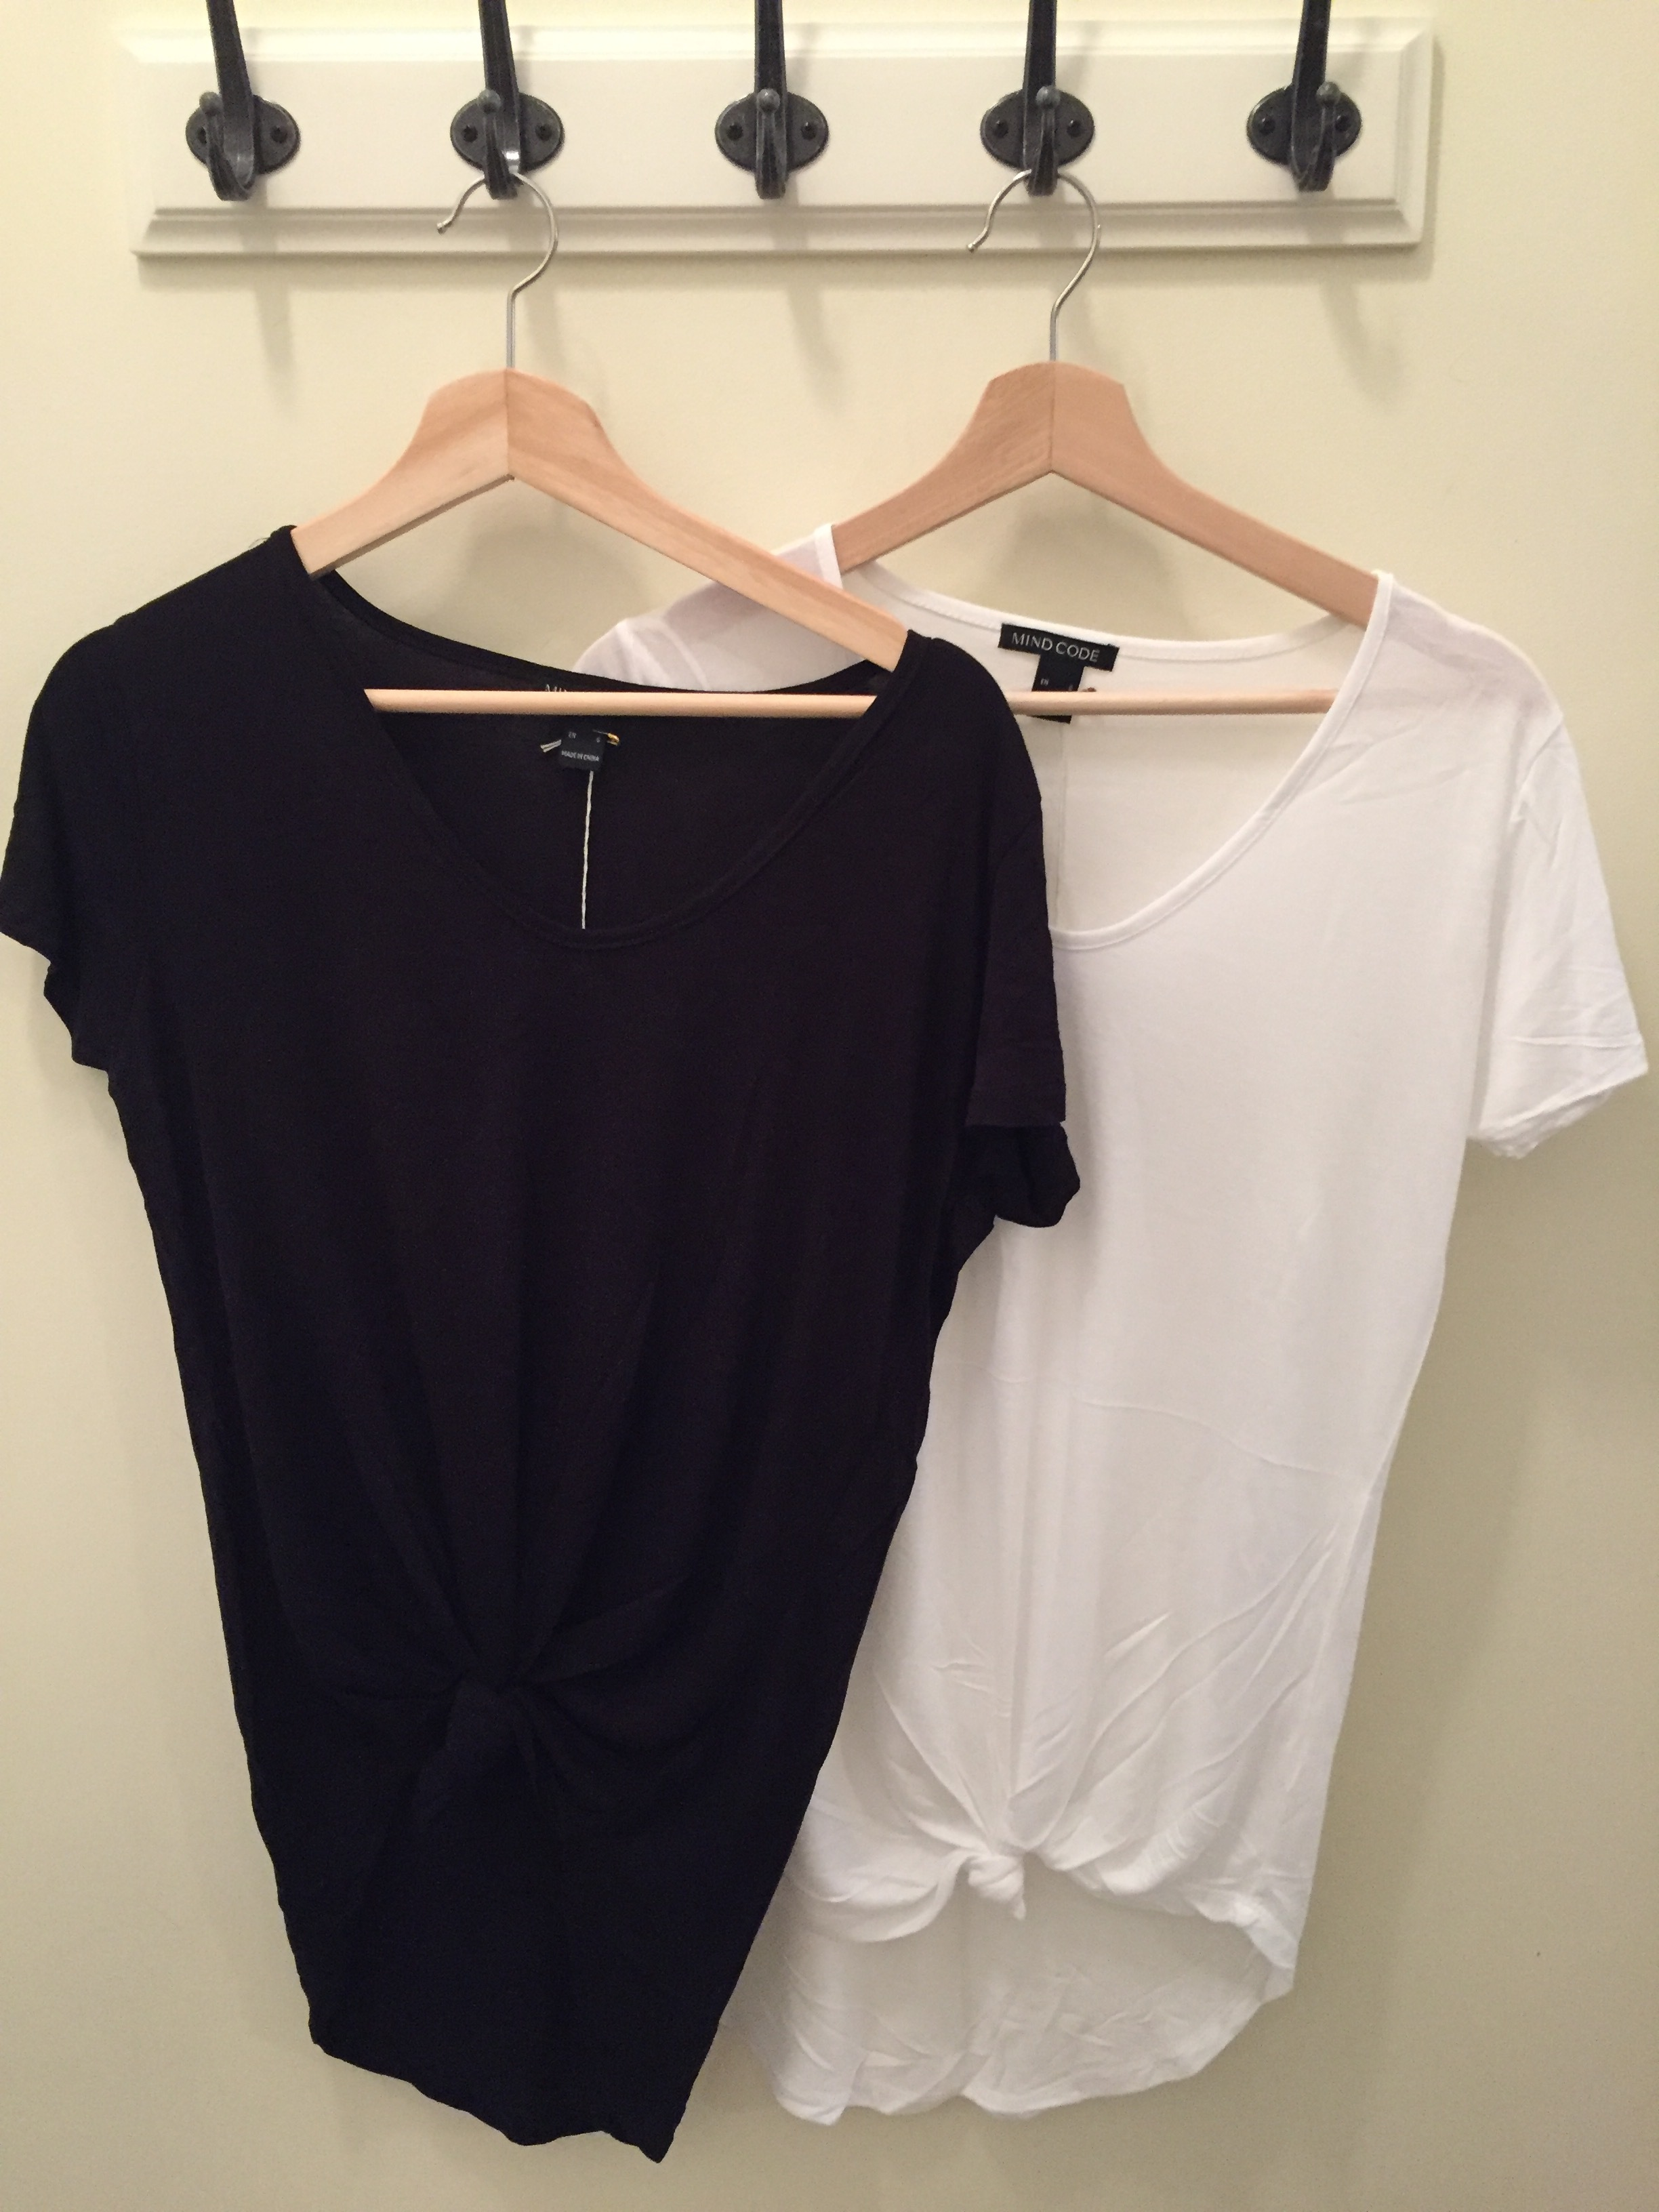 Knot Front Tee $16